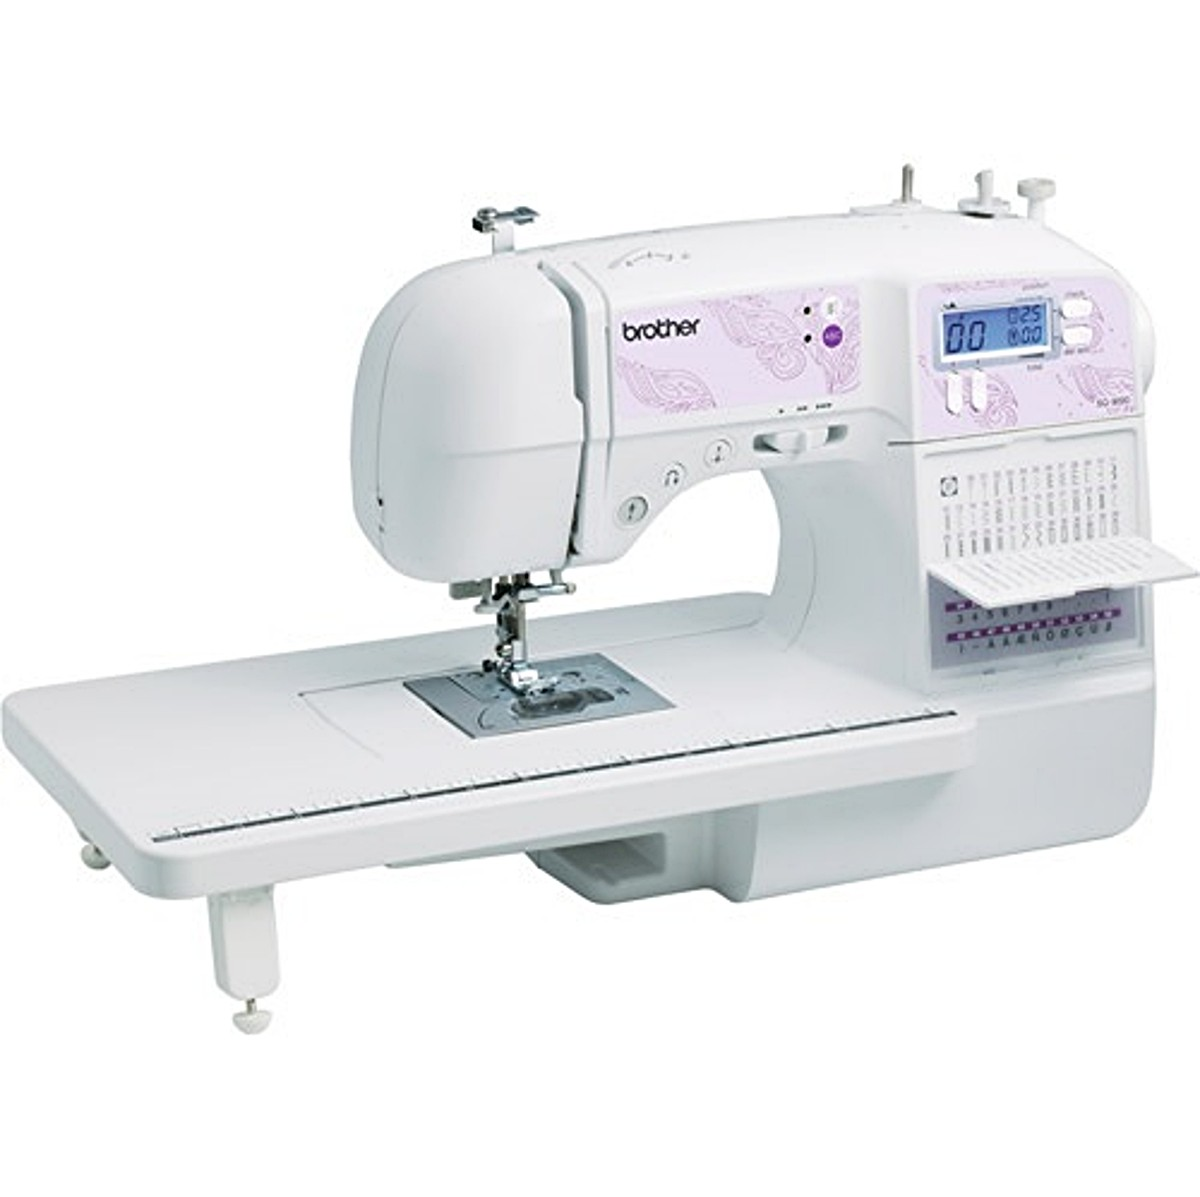 Brother SQ9000 Sewing Machine Review